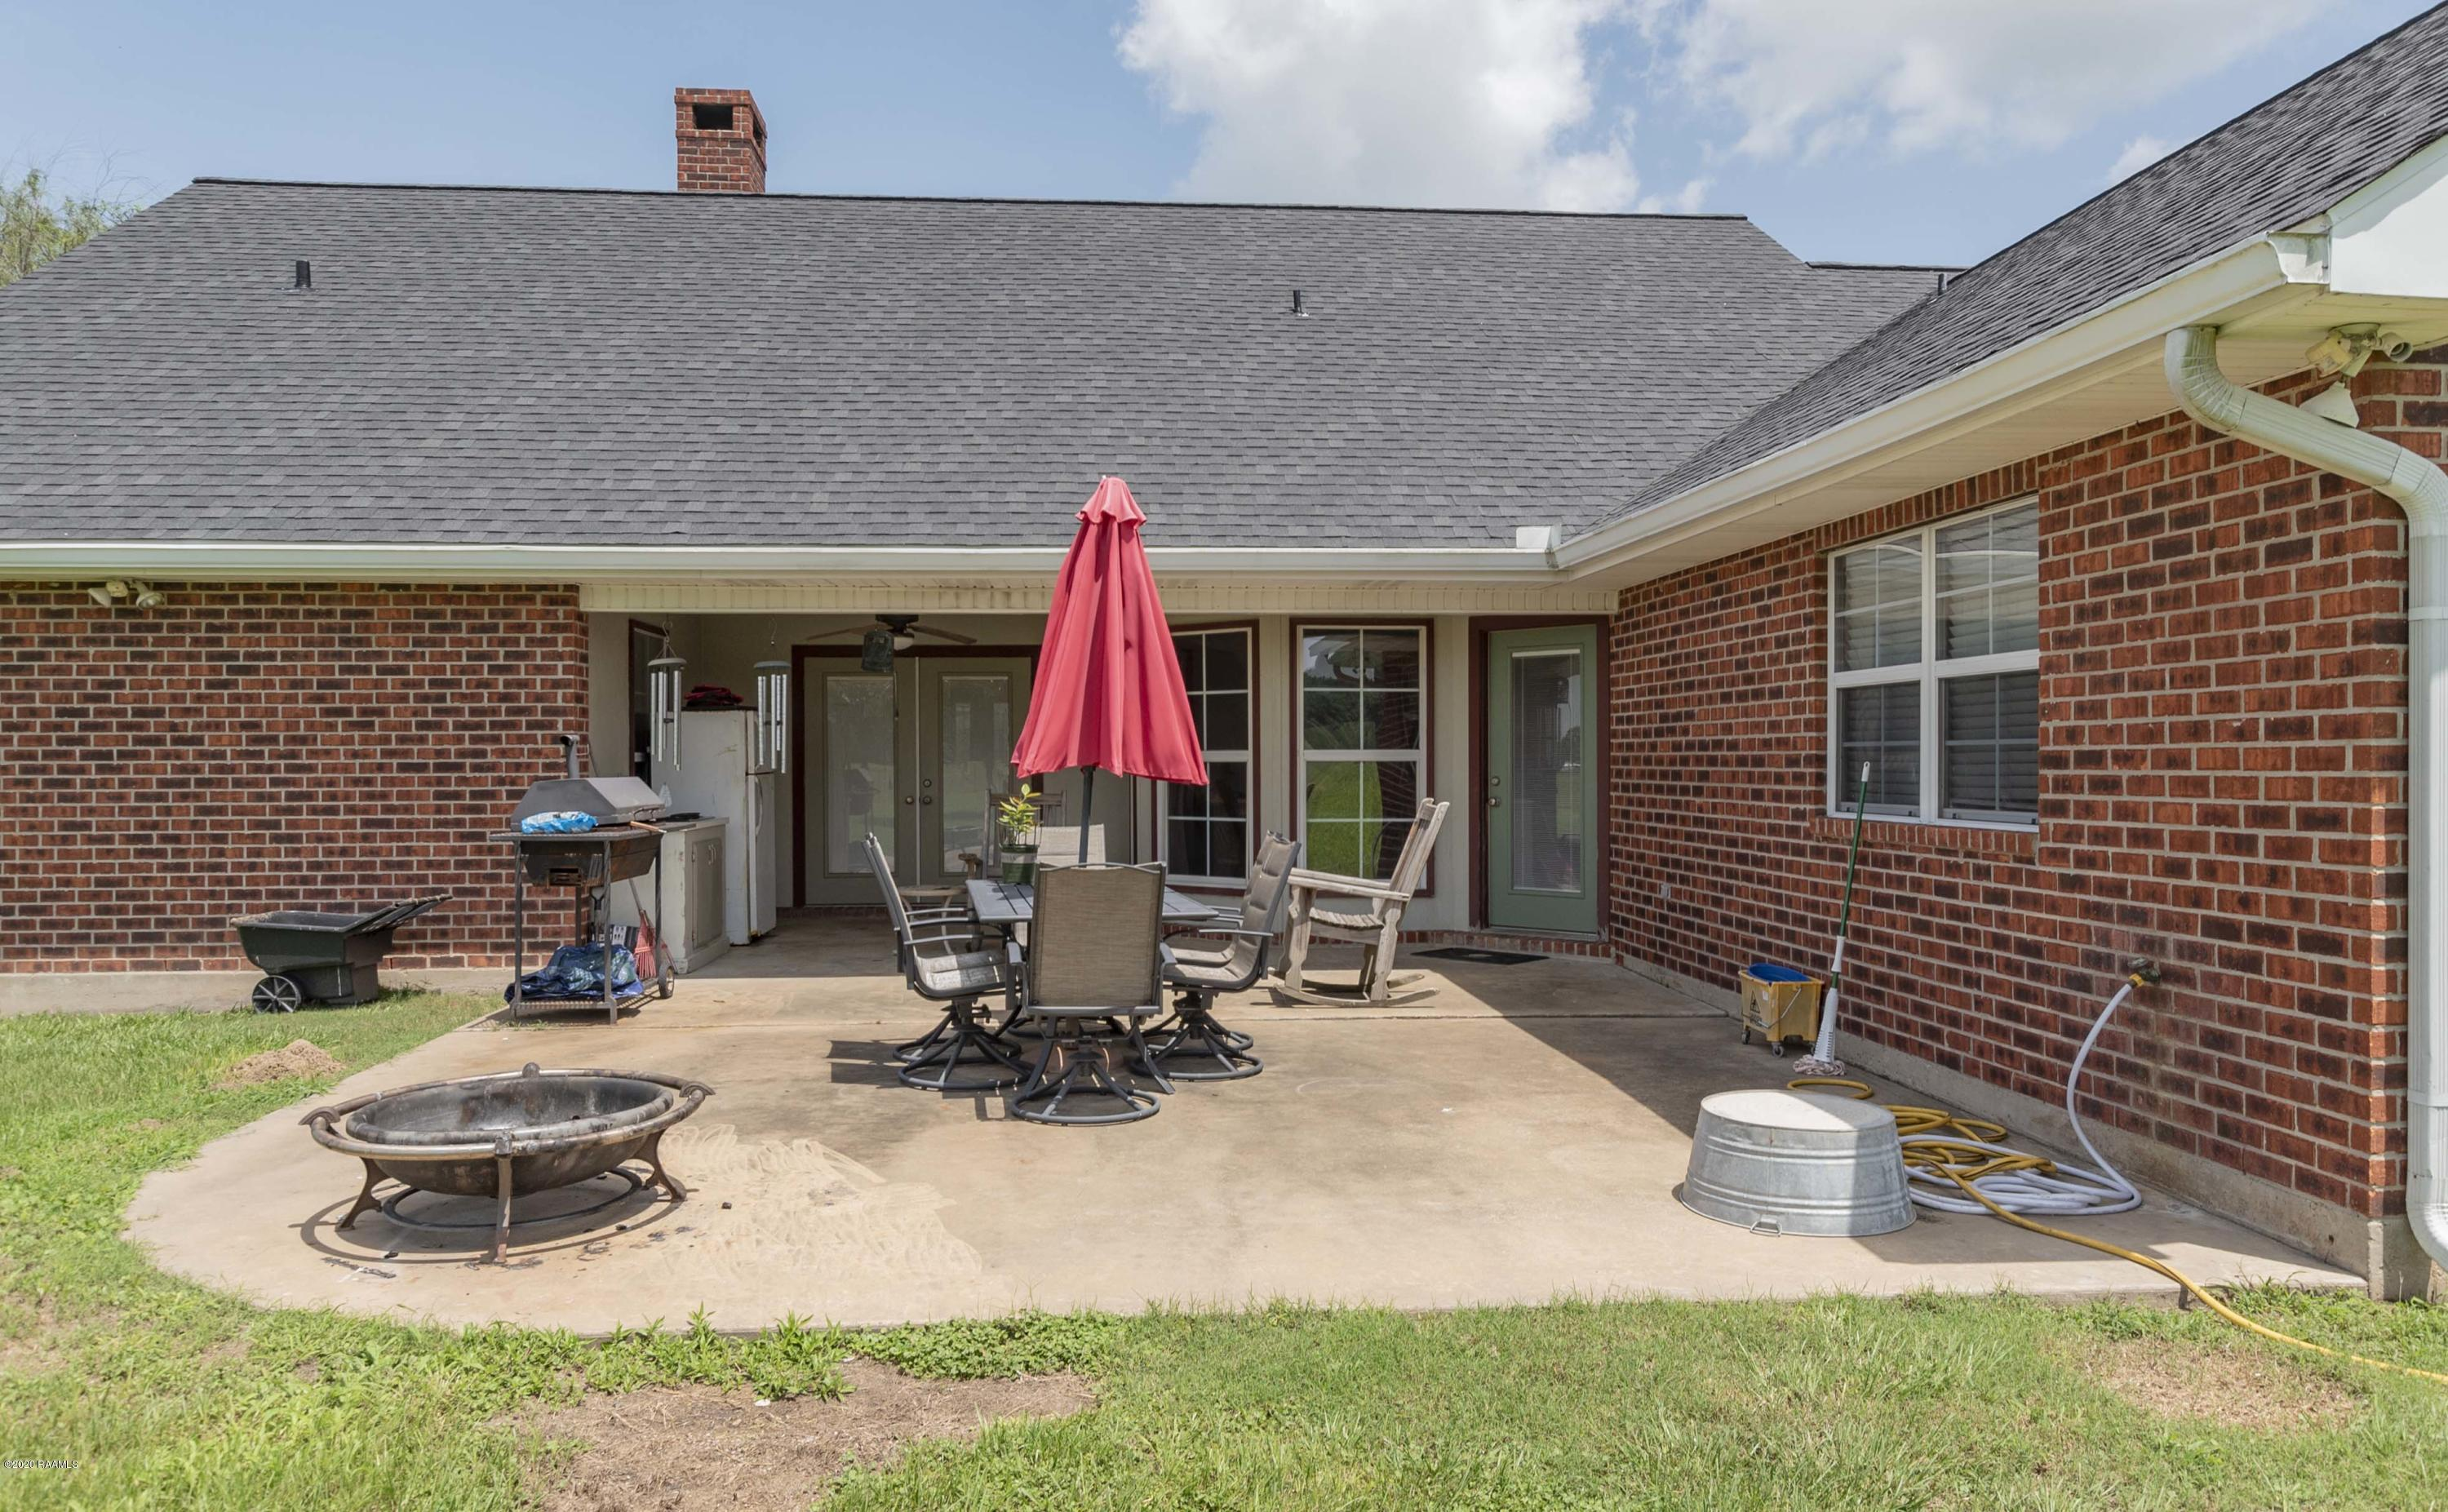 422 Eugene Soileau Road, Washington, LA 70589 Photo #33